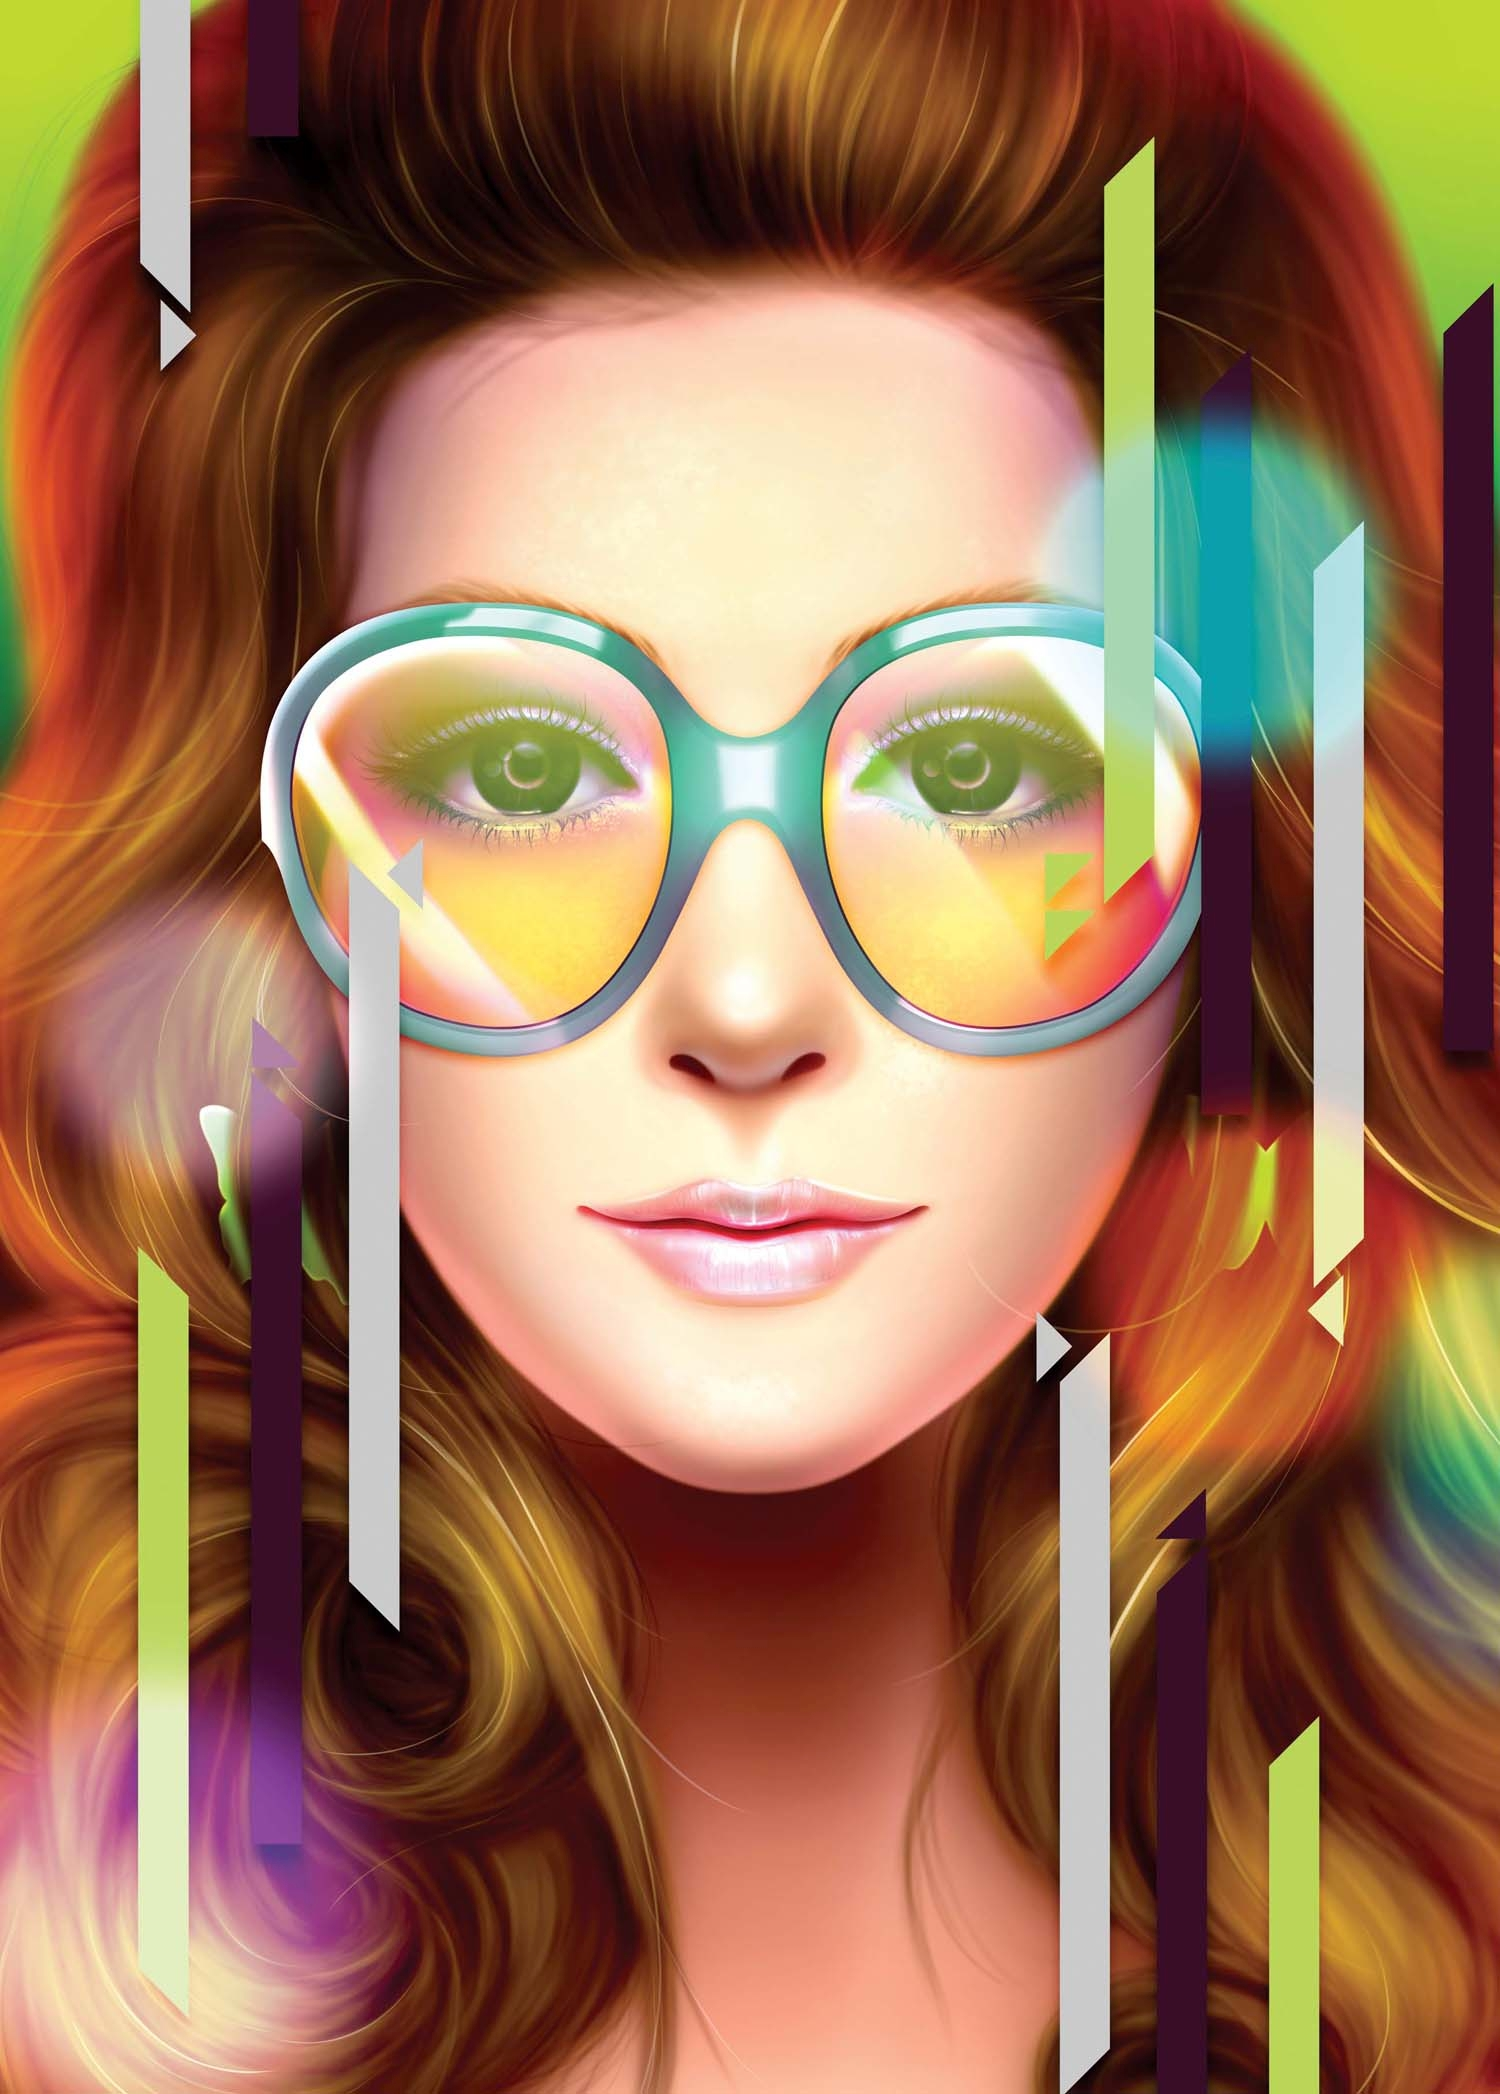 80s Illustration Style Create an 80s Style Airbrush